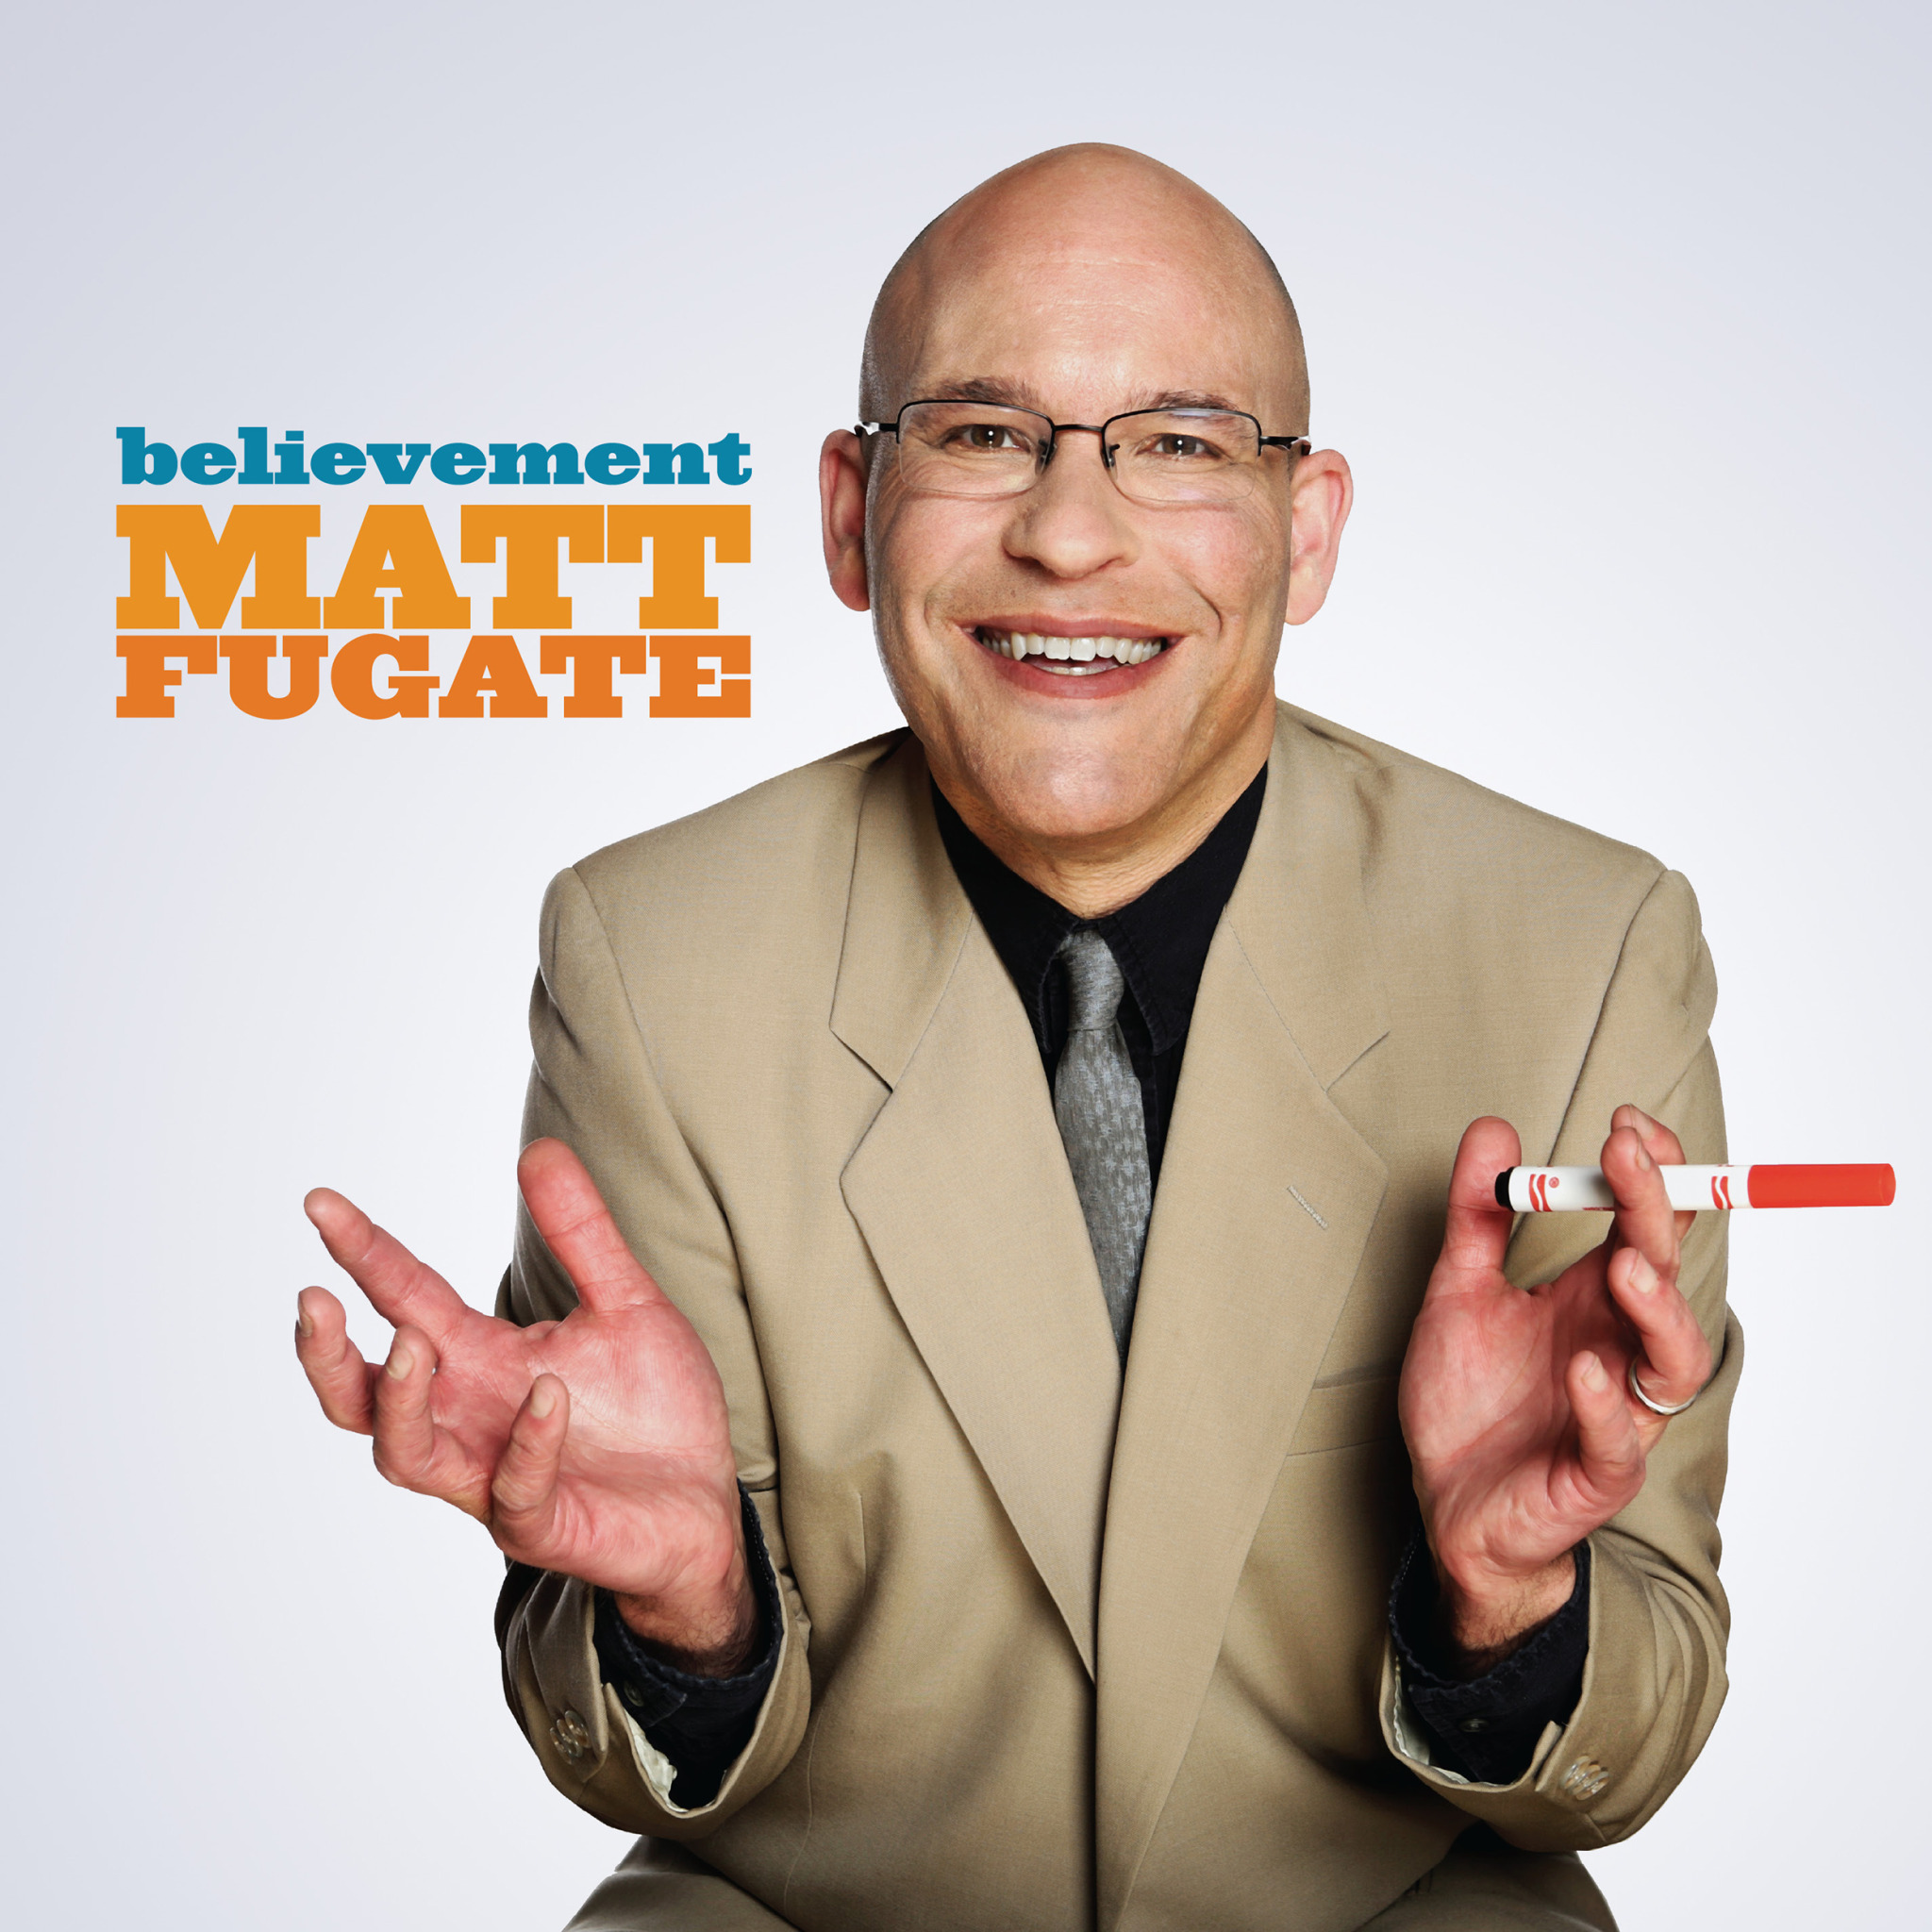 COMEDY NEWS: MATT FUGATE'S BELIEVEMENT FROM STAND UP! RECORDS OUT NOW